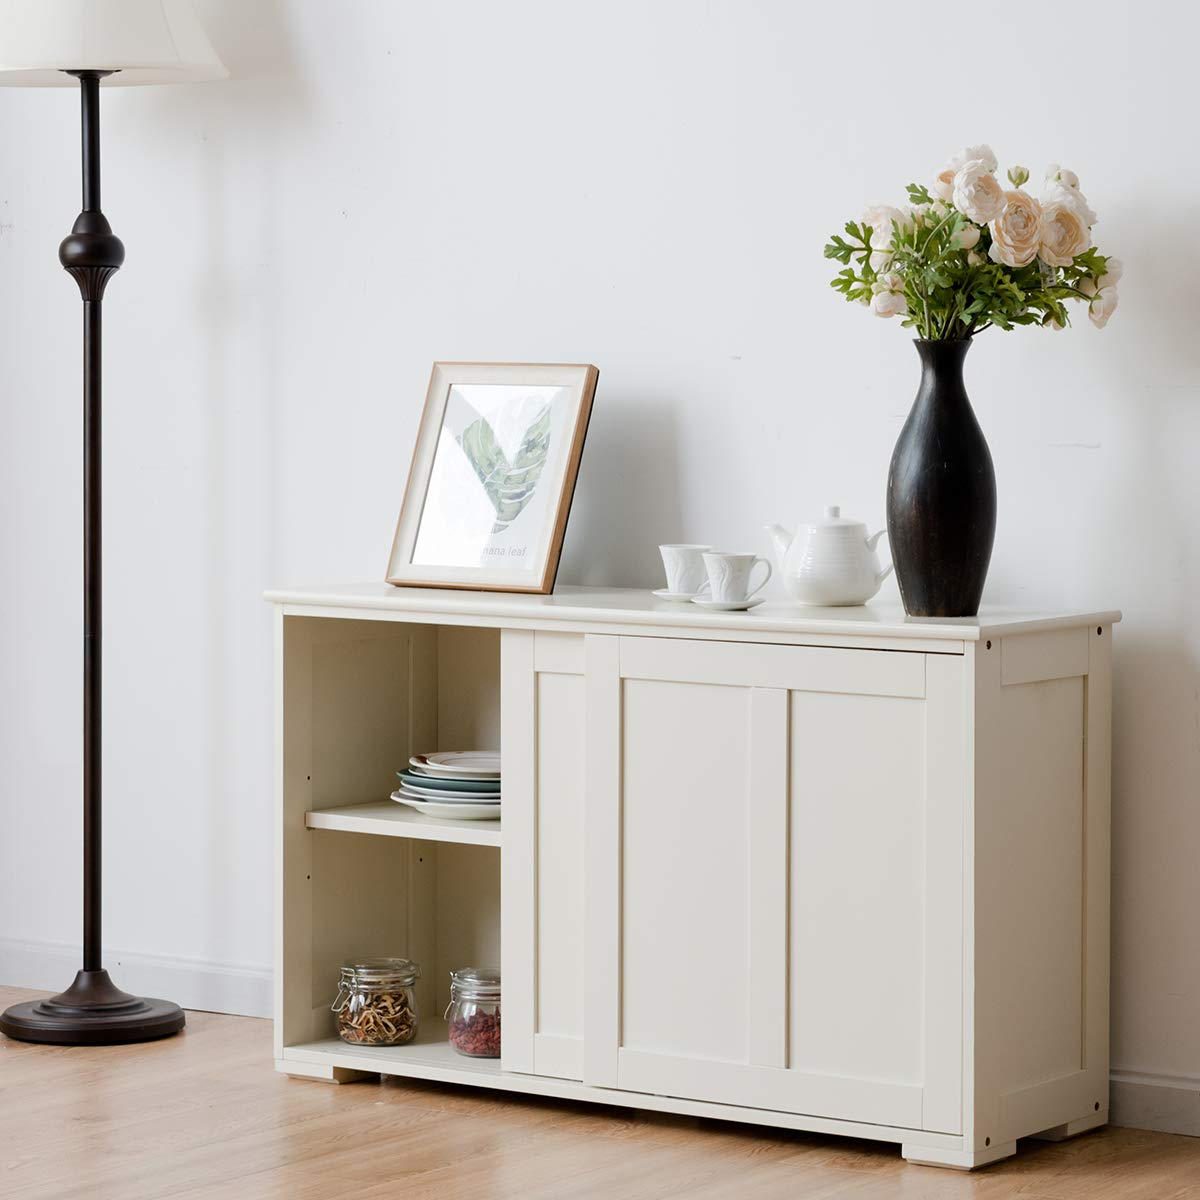 Costzon Kitchen Storage Sideboard, Antique Stackable Cabinet for Home Cupboard Buffet Dining Room White with Sliding Door Window